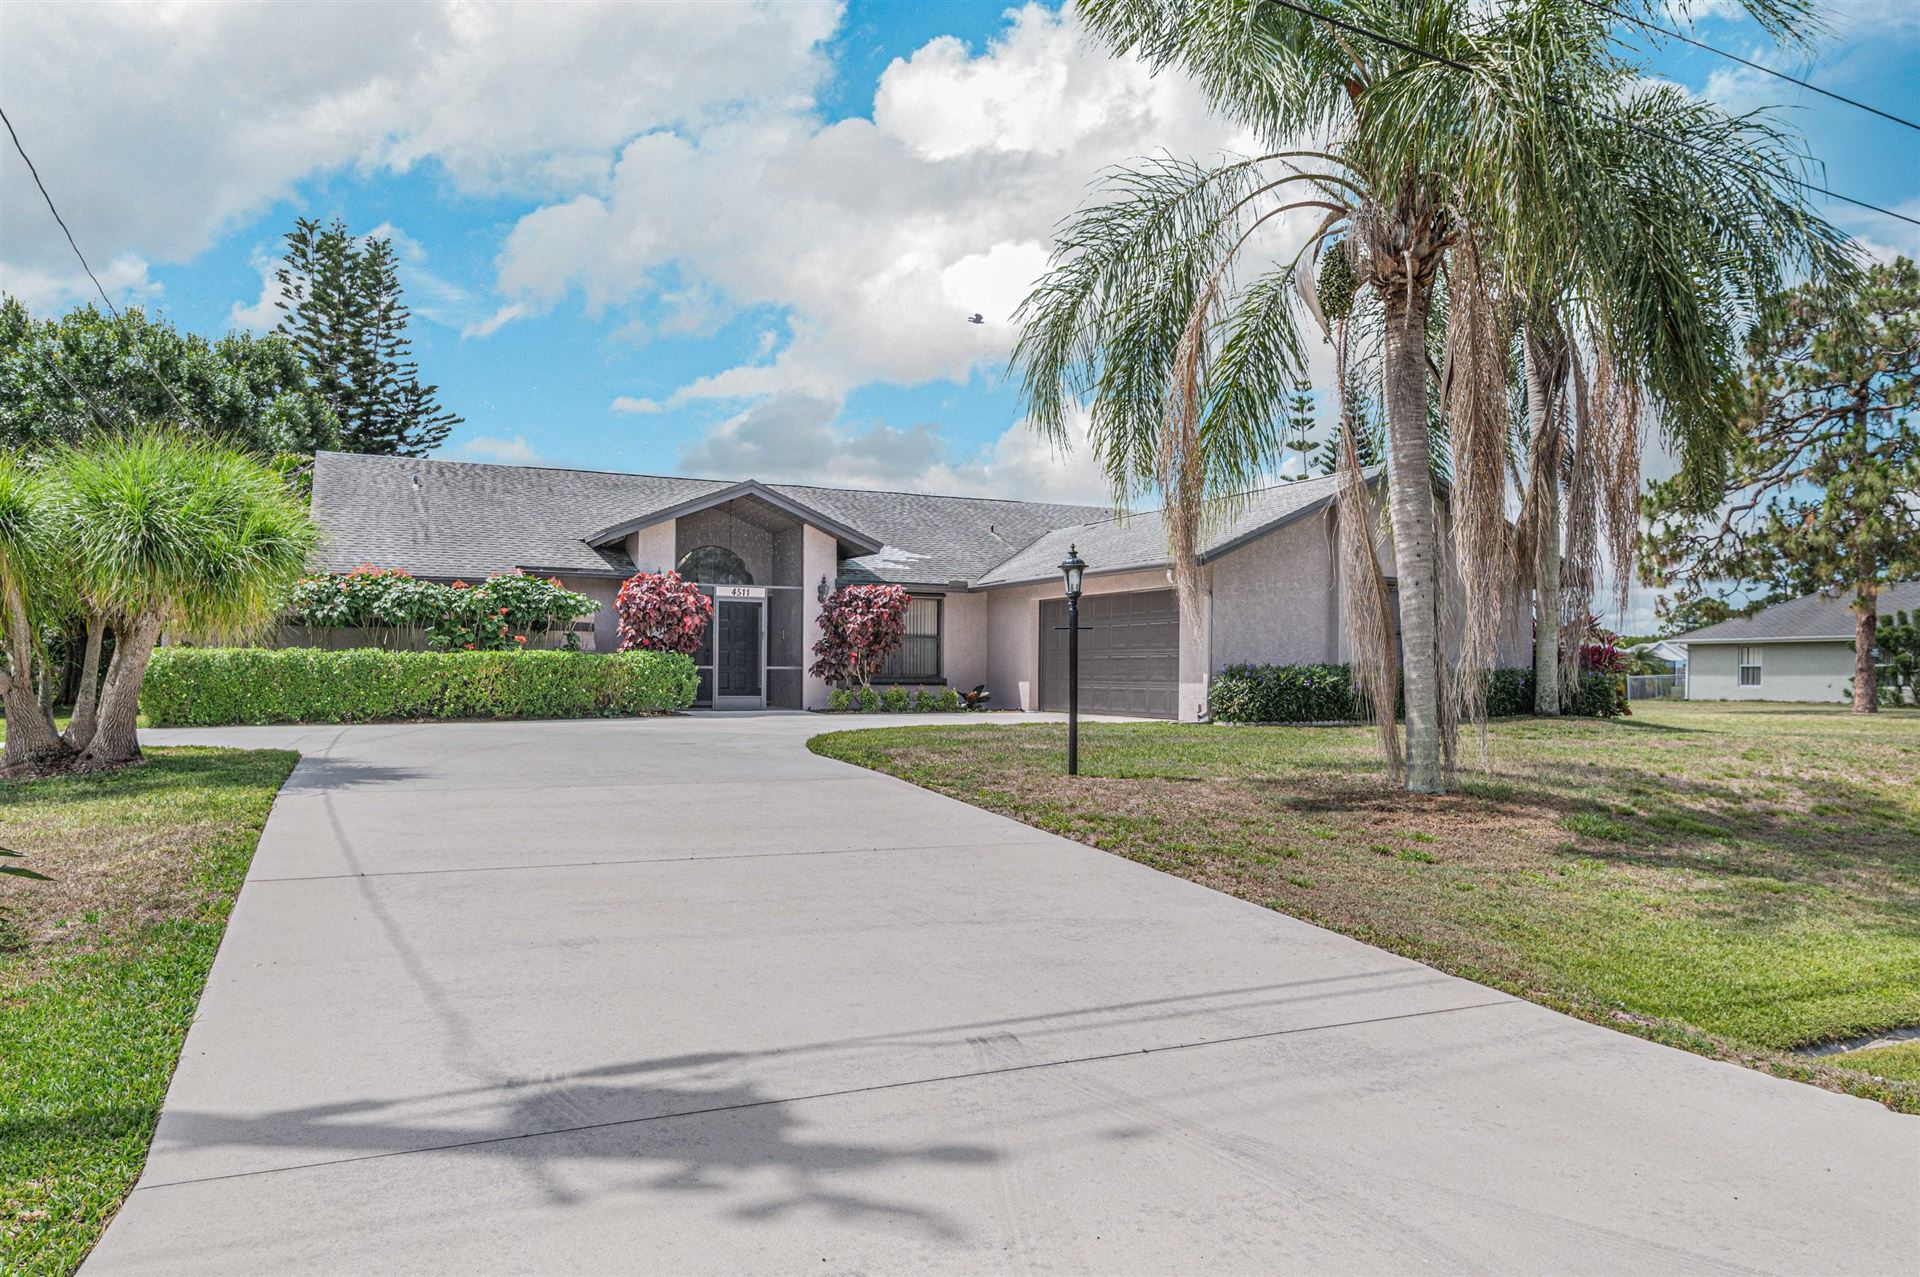 4511 NW Brownell Terrace, Port Saint Lucie, FL 34983 - MLS#: RX-10715647